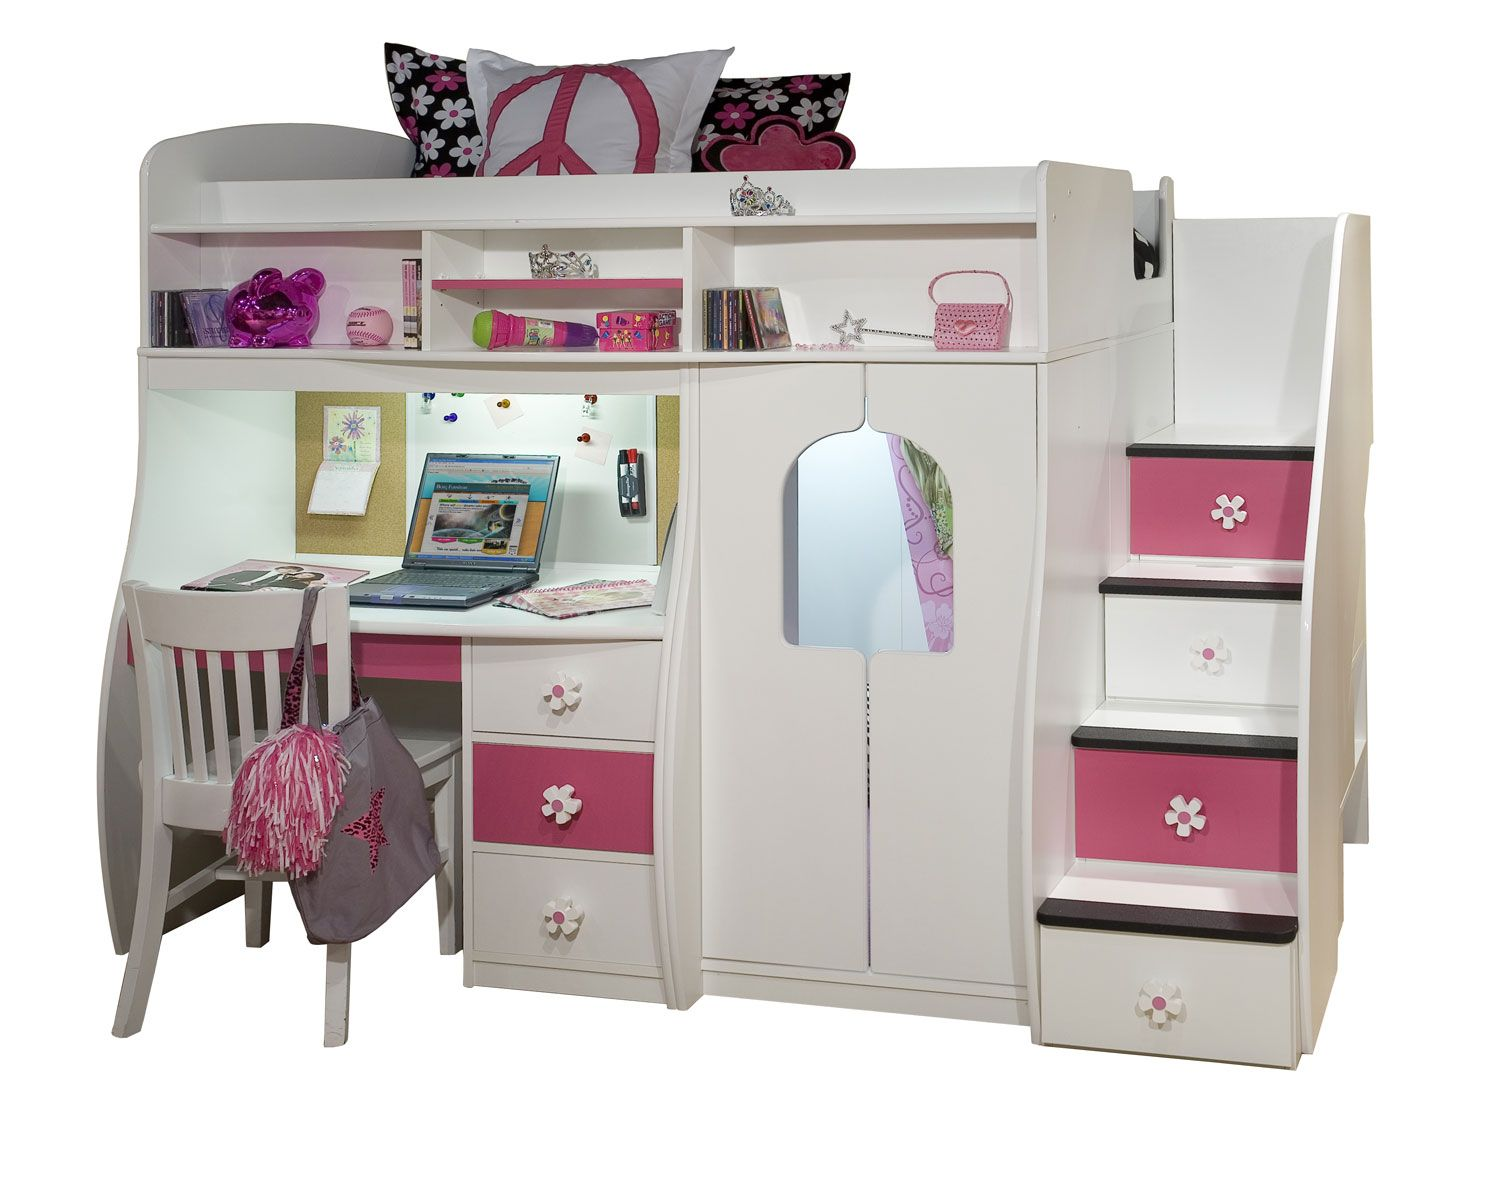 Cool Bunk Beds For S Furniture Collection Berg Kids Captains Lofts